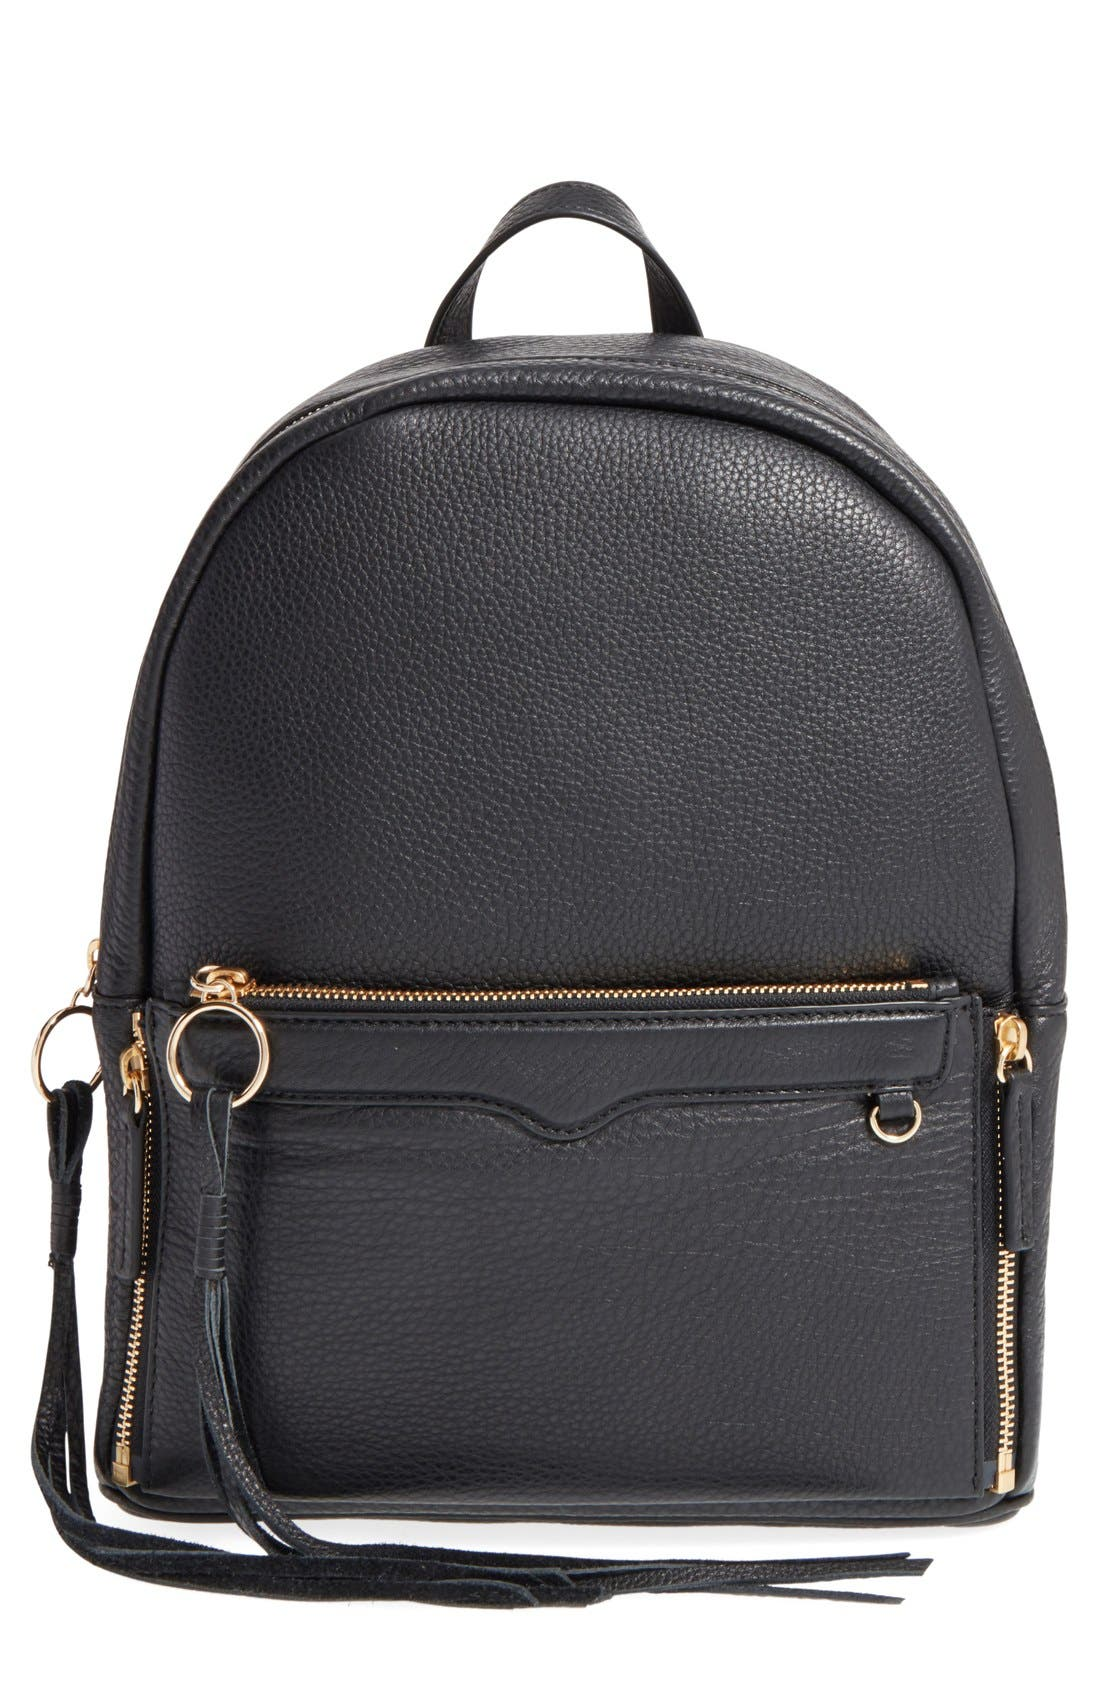 Alternate Image 1 Selected - Rebecca Minkoff 'Lola' Backpack with Detachable Crossbody